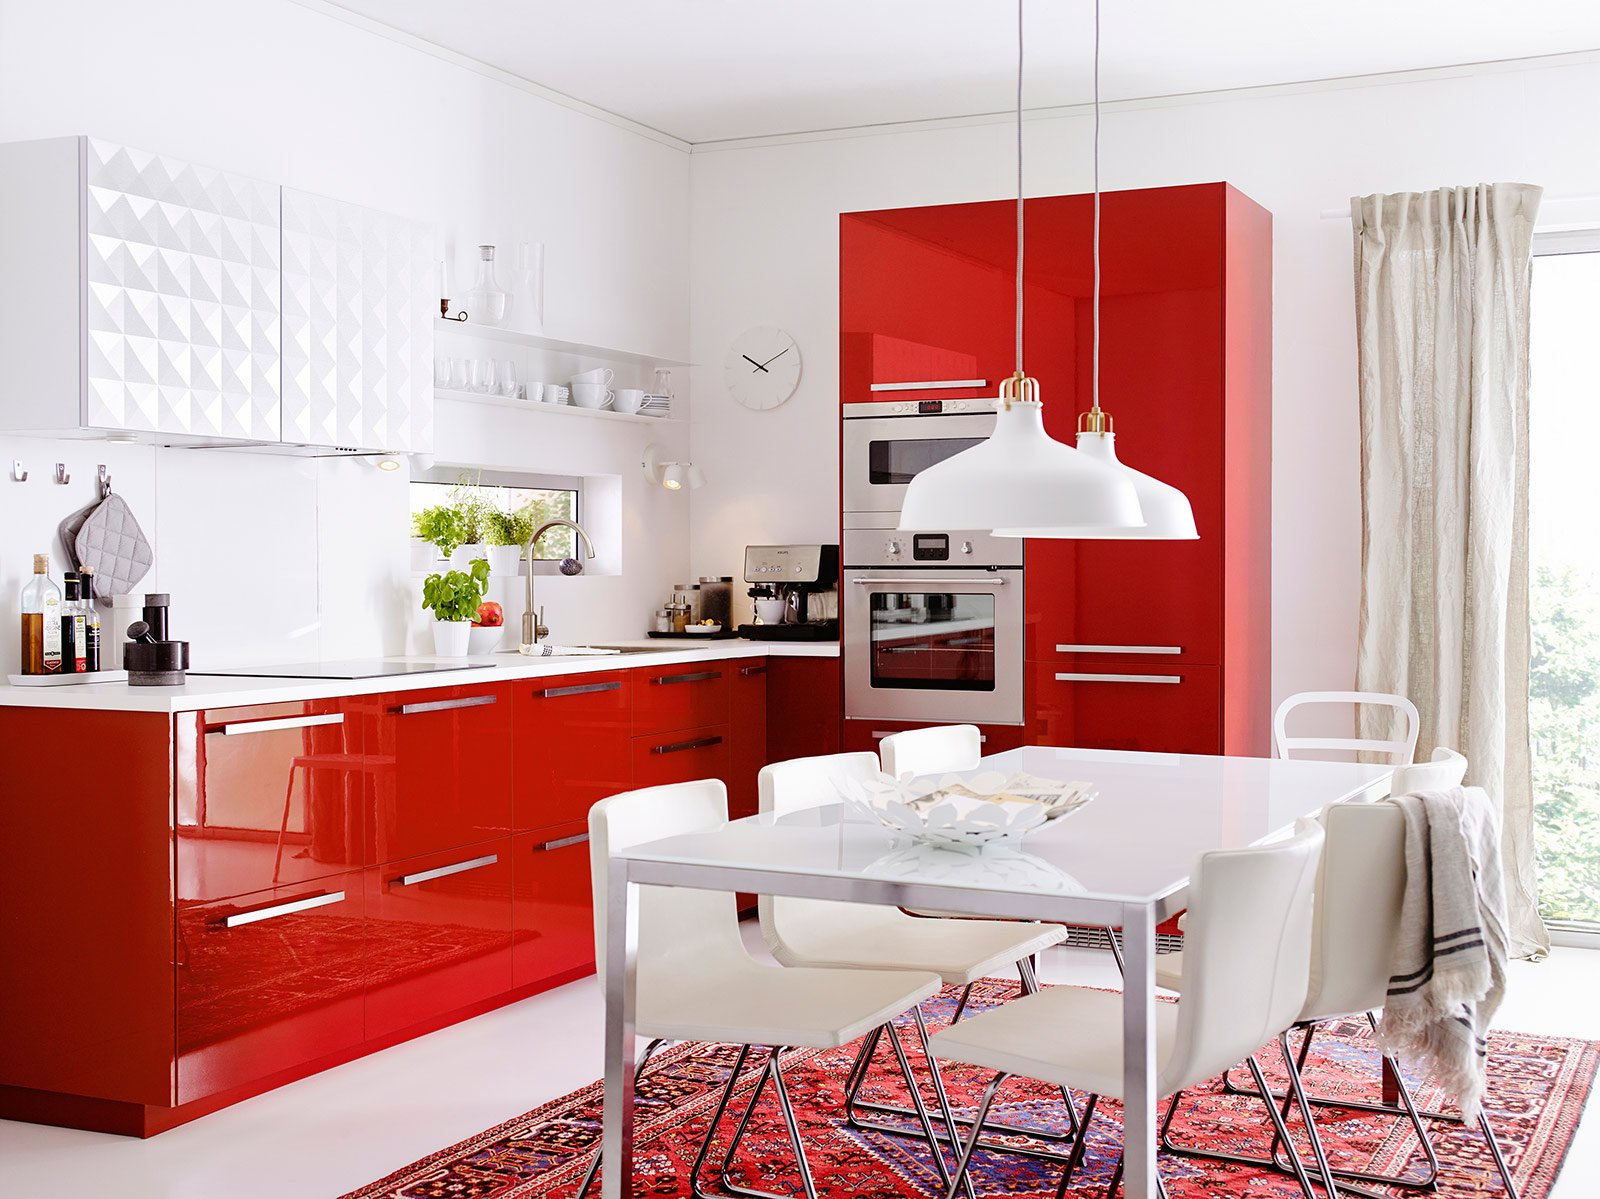 Cucine colorate come un quadro contemporaneo cose di casa - Idee deco woonkamer foto ...